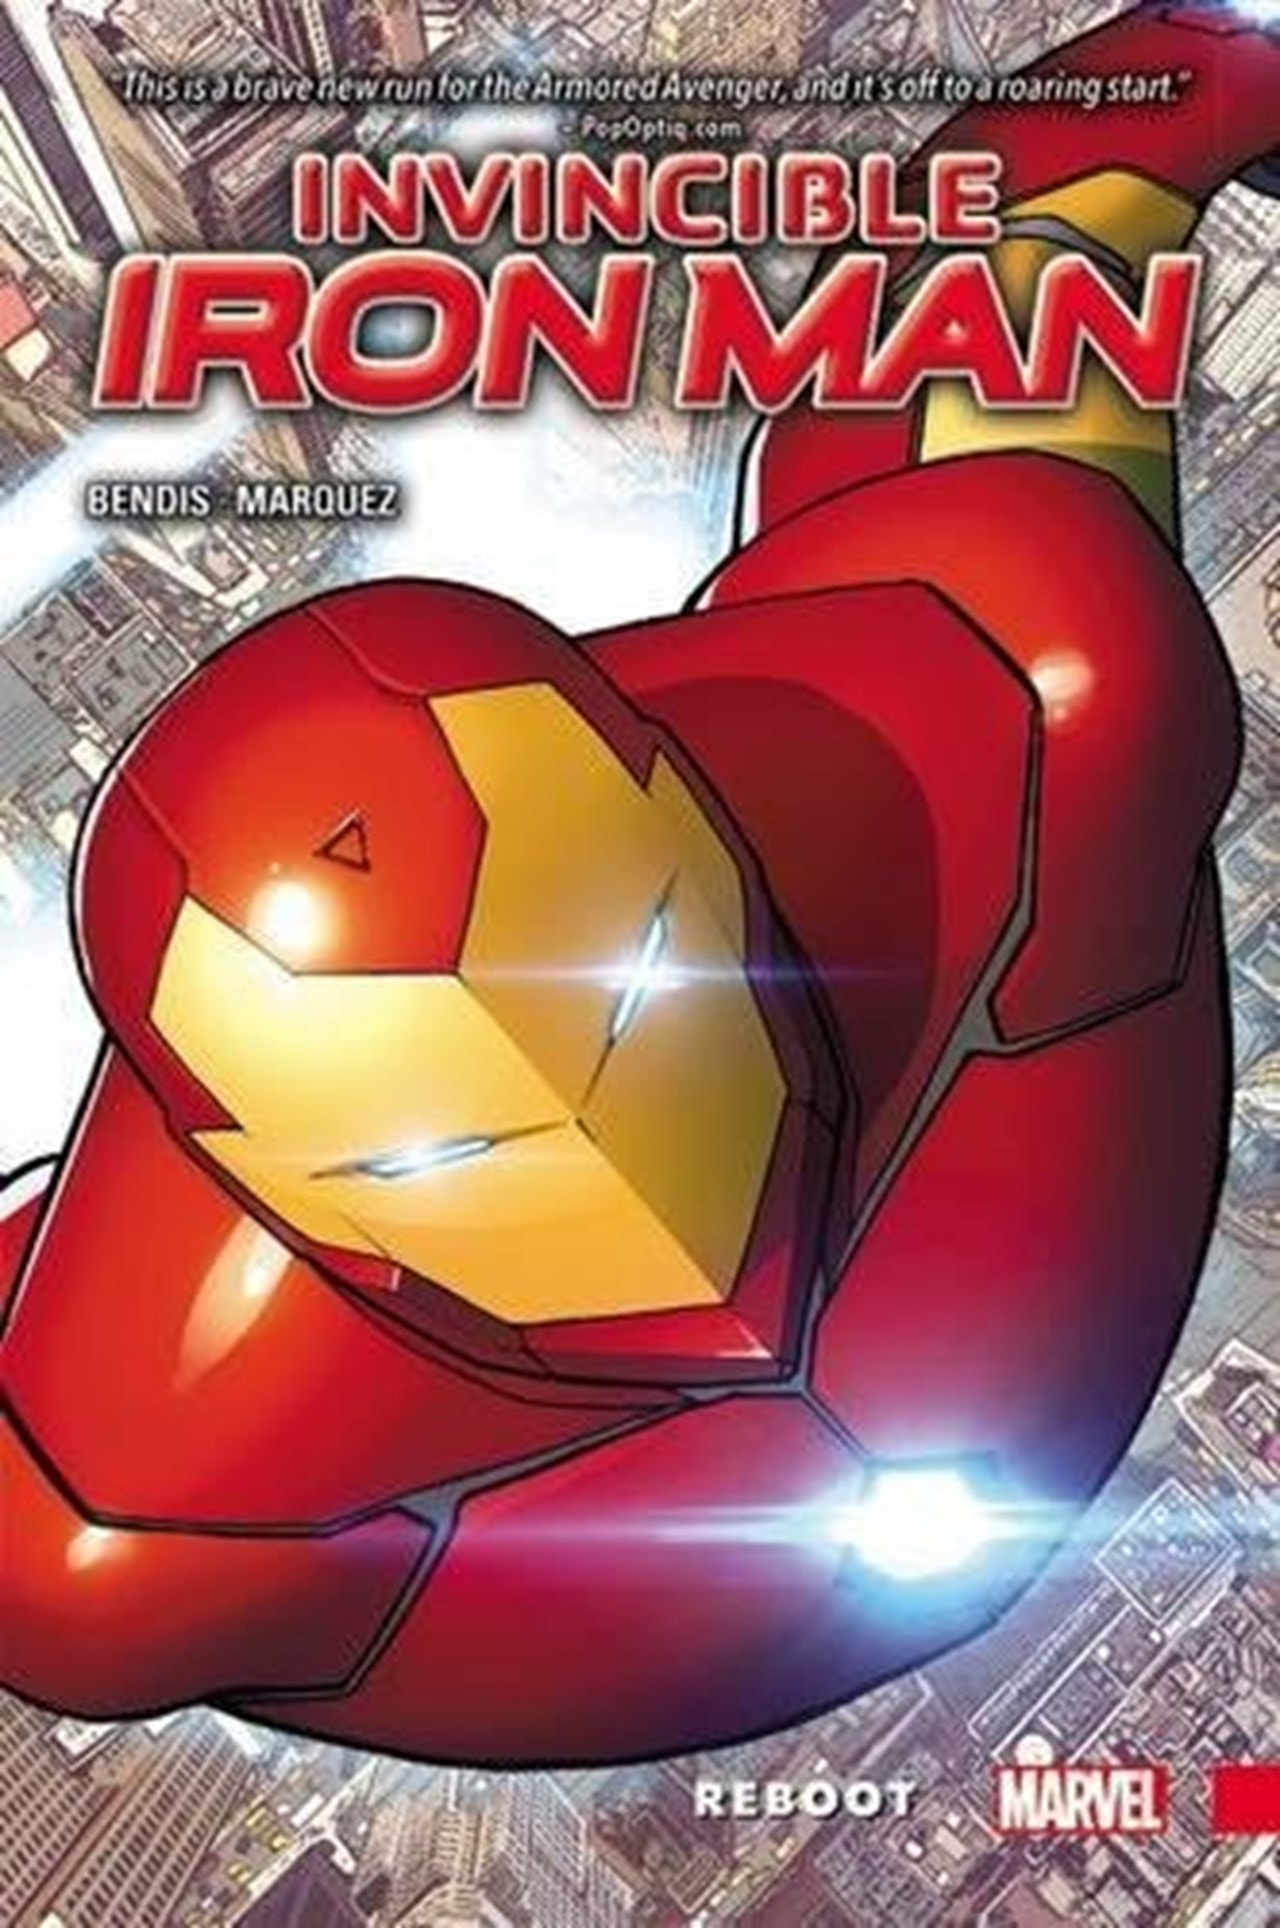 Invincible Iron Man Vol. 1: Reboot - 1